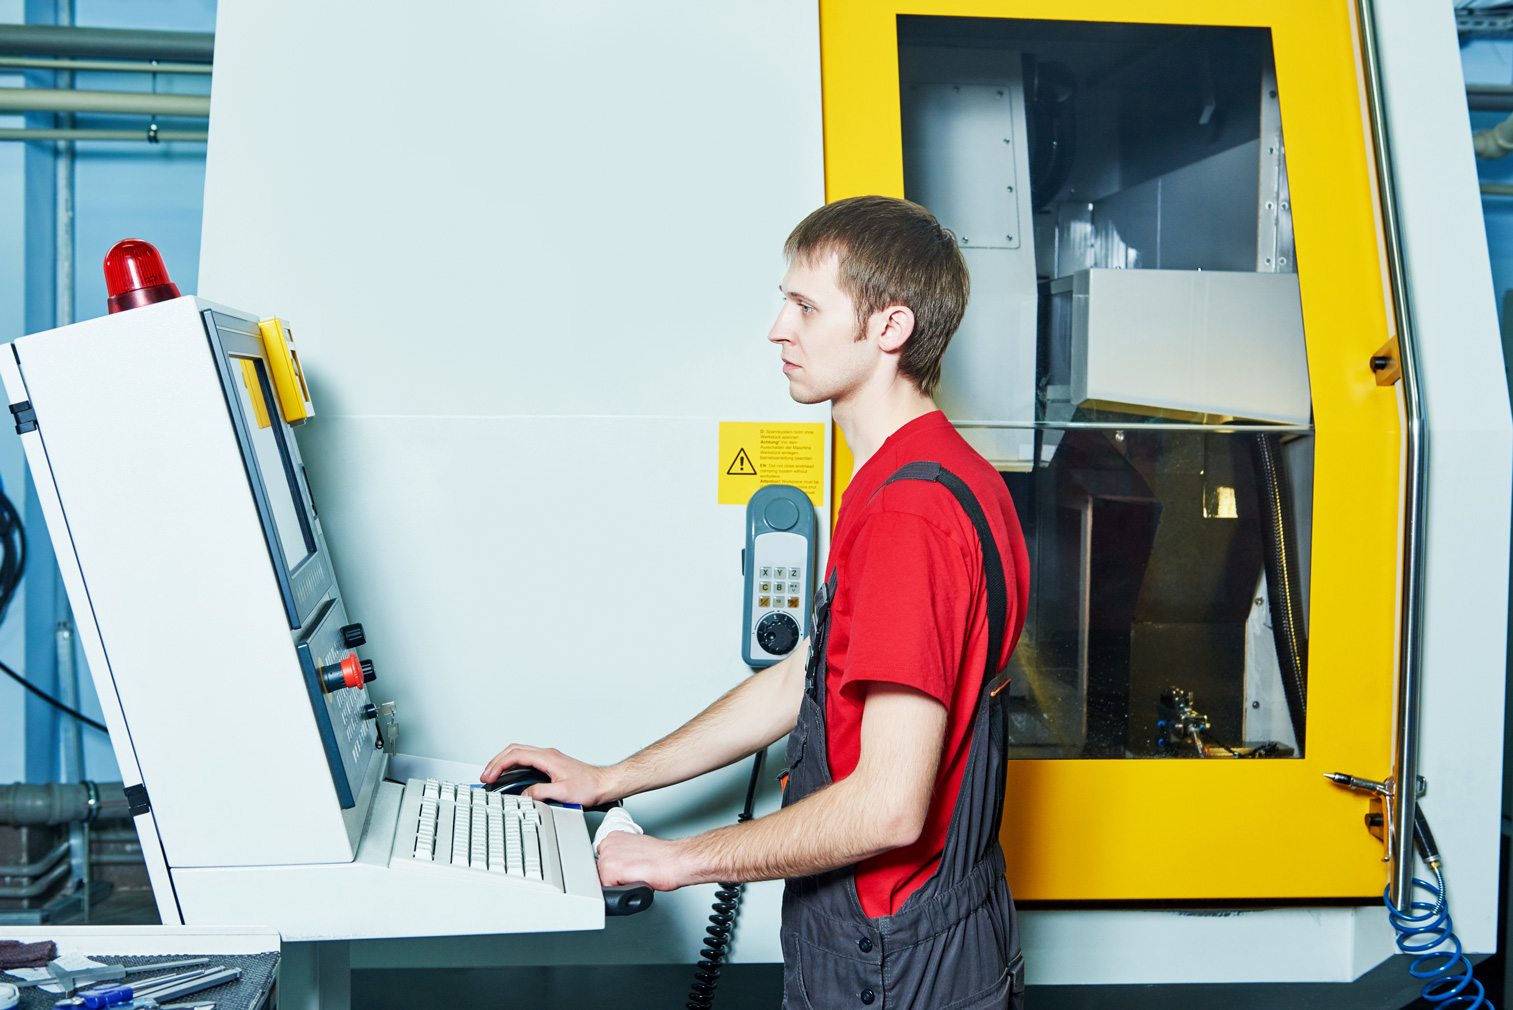 About to Buy a Used CNC Machine Read These 4 Tips First